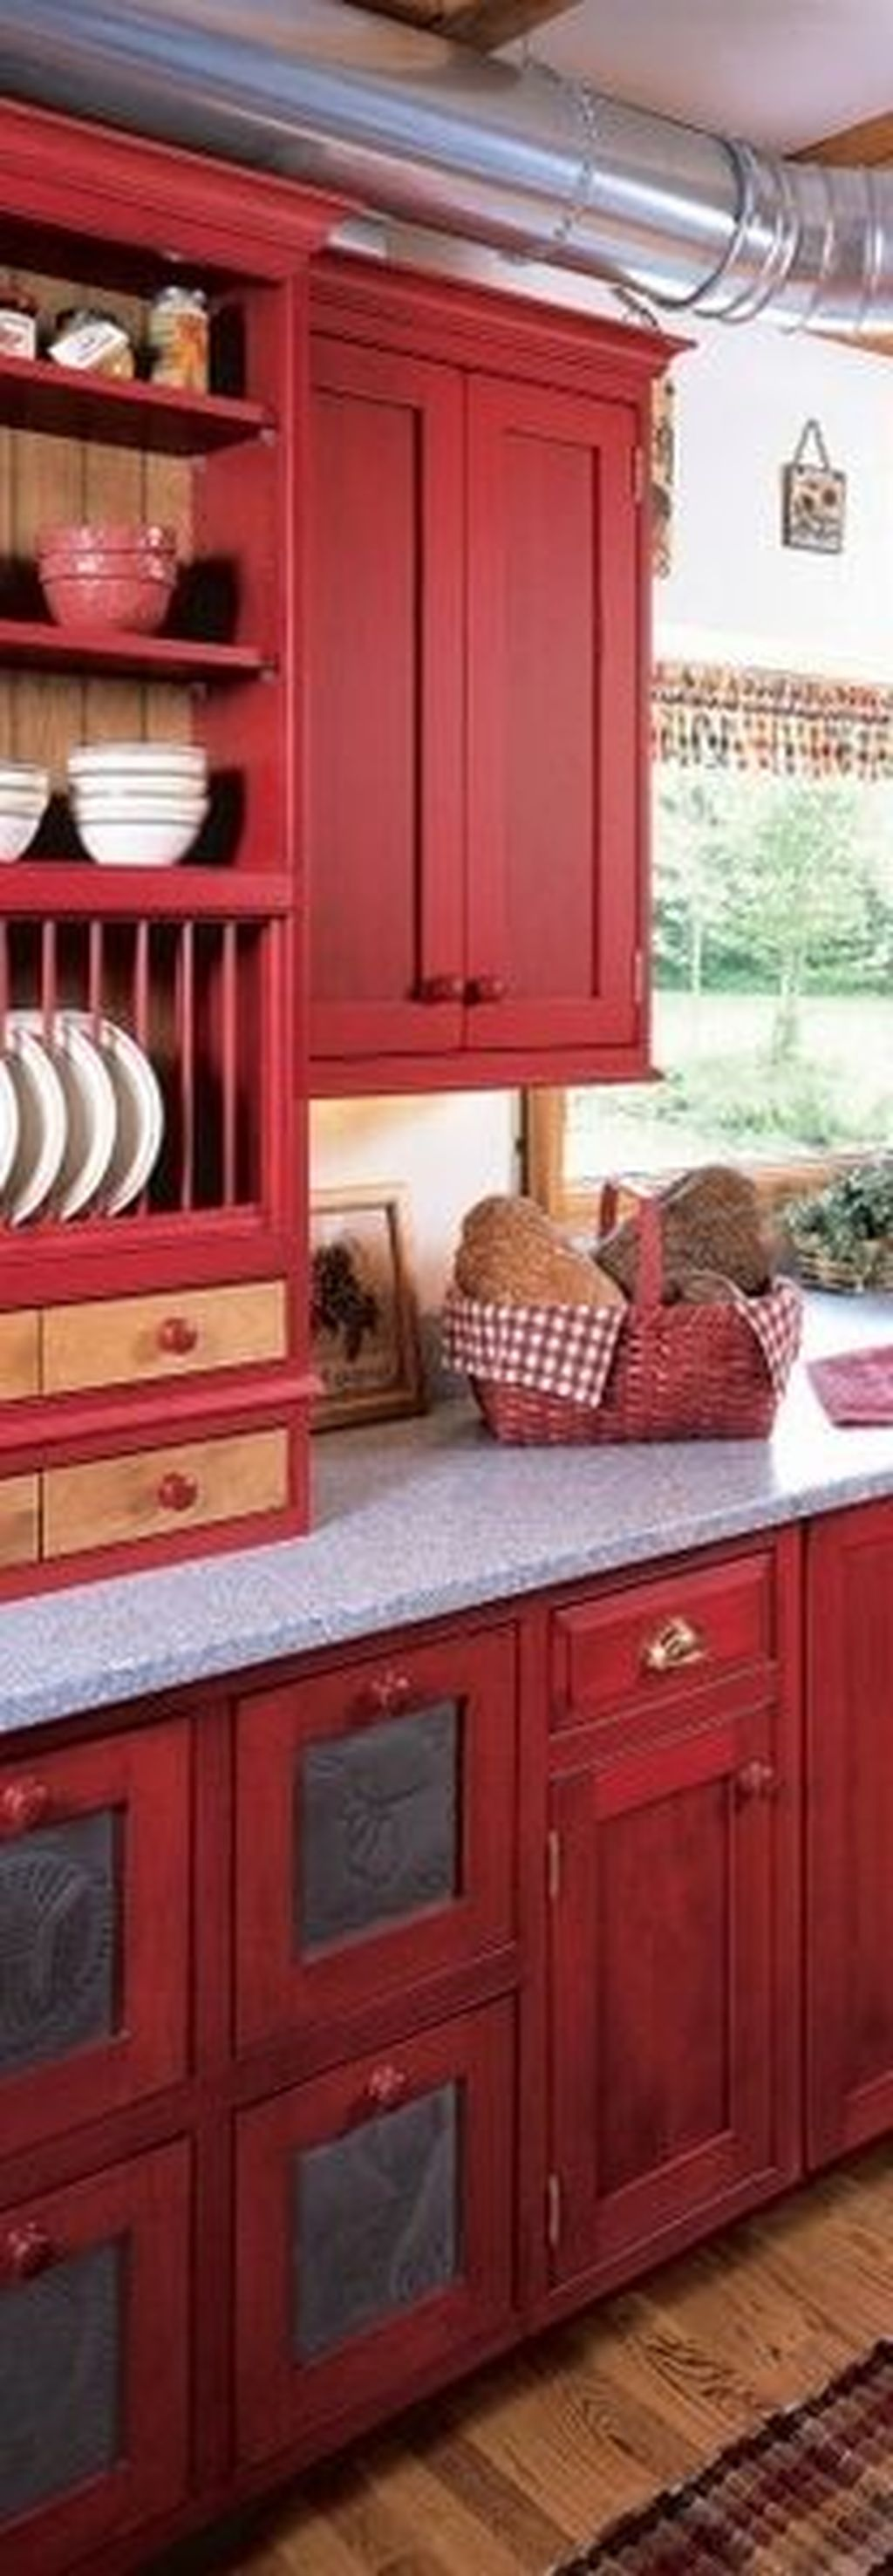 20 fabulous red kitchen wall decoration ideas that you